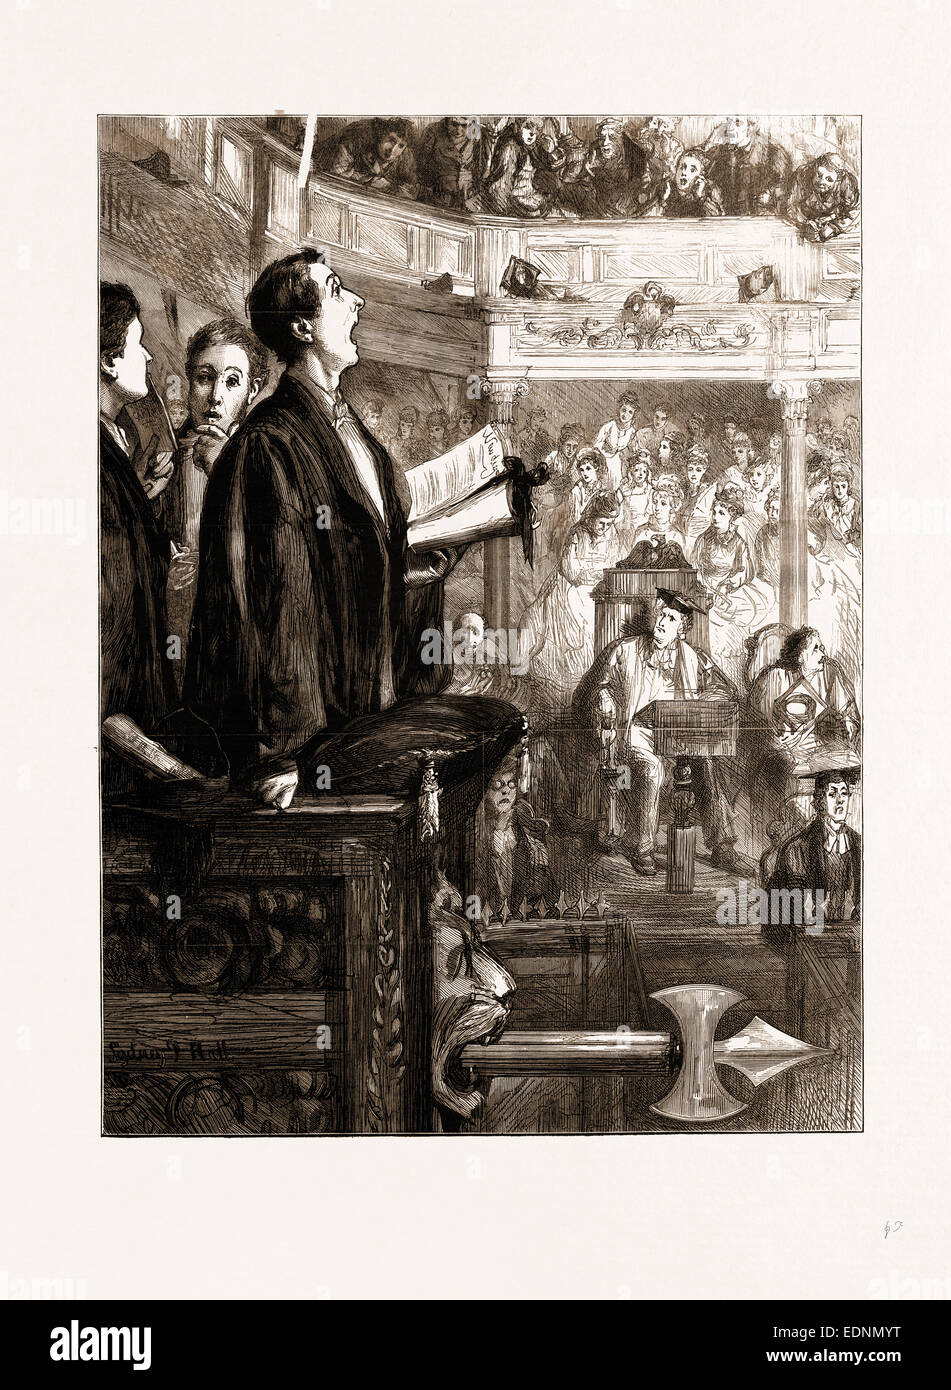 SPEAK UP, SIR! A REMINISCENCE OF OXFORD COMMEMORATION, UK, 1875 - Stock Image